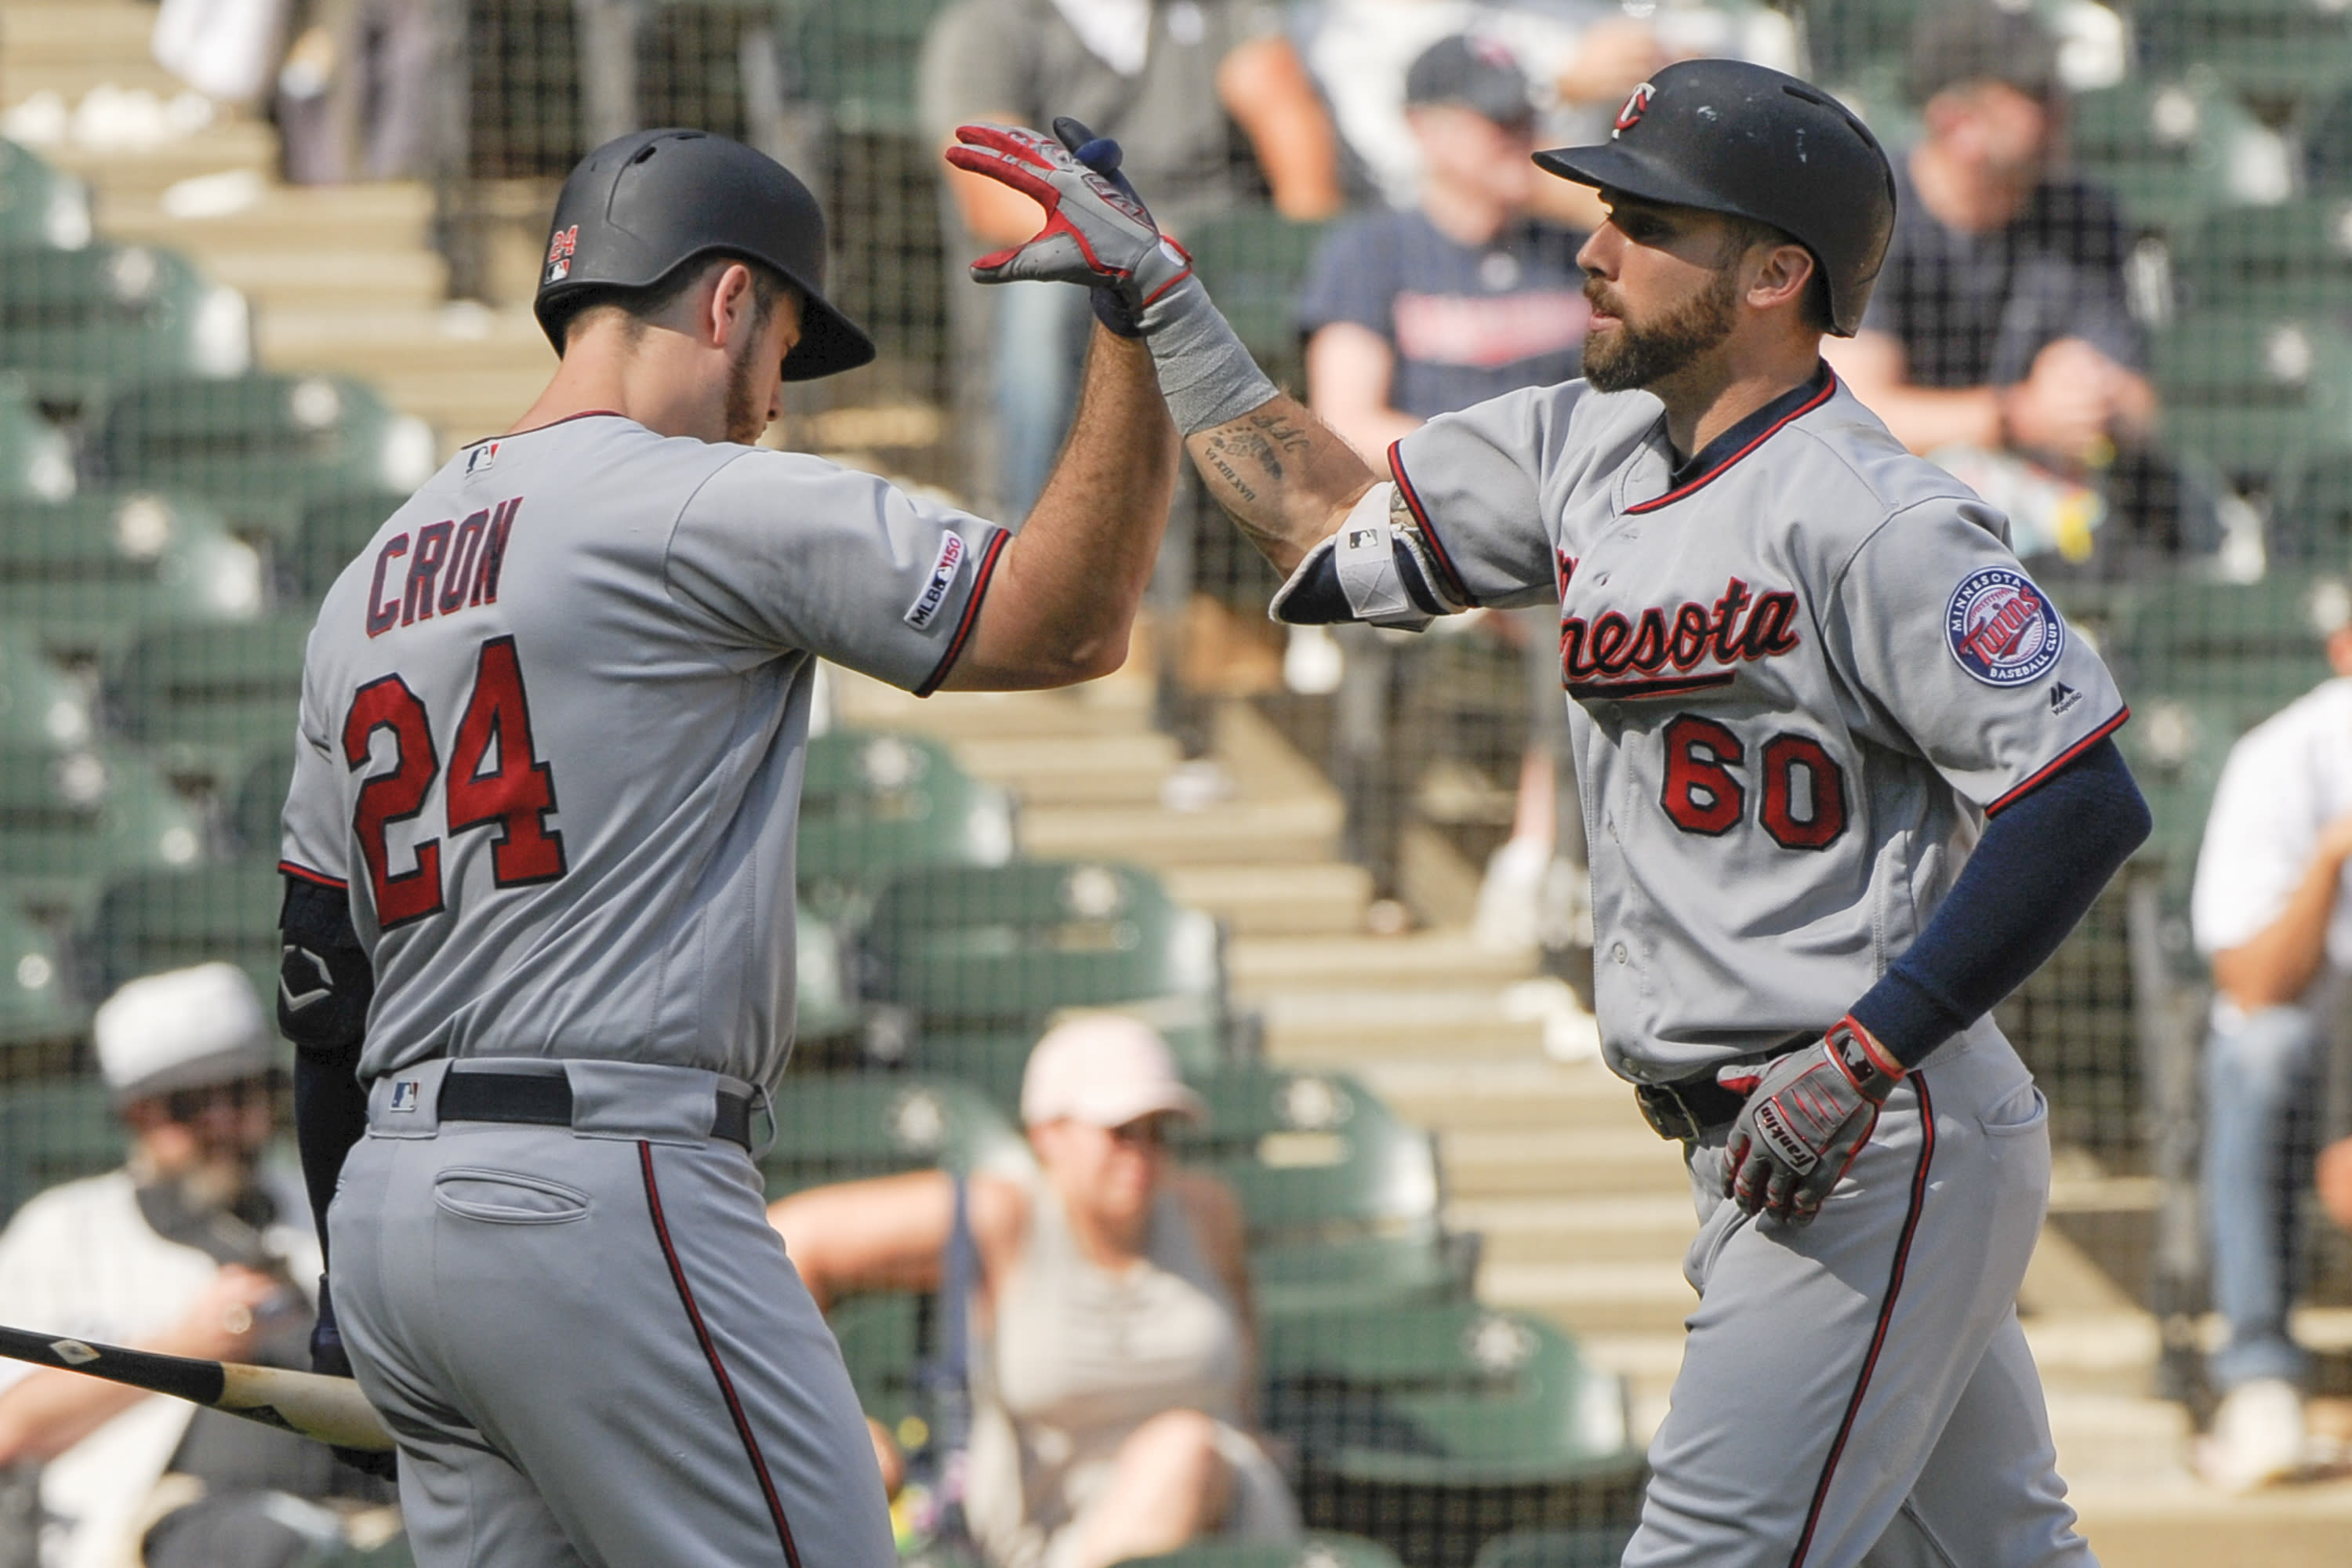 Minnesota Twins' C.J. Cron (24) congratulates Jake Cave (60) on his seventh-inning home run against the Chicago White Sox during a baseball game Thursday, Aug. 29, 2019, in Chicago. (AP Photo/Mark Black)